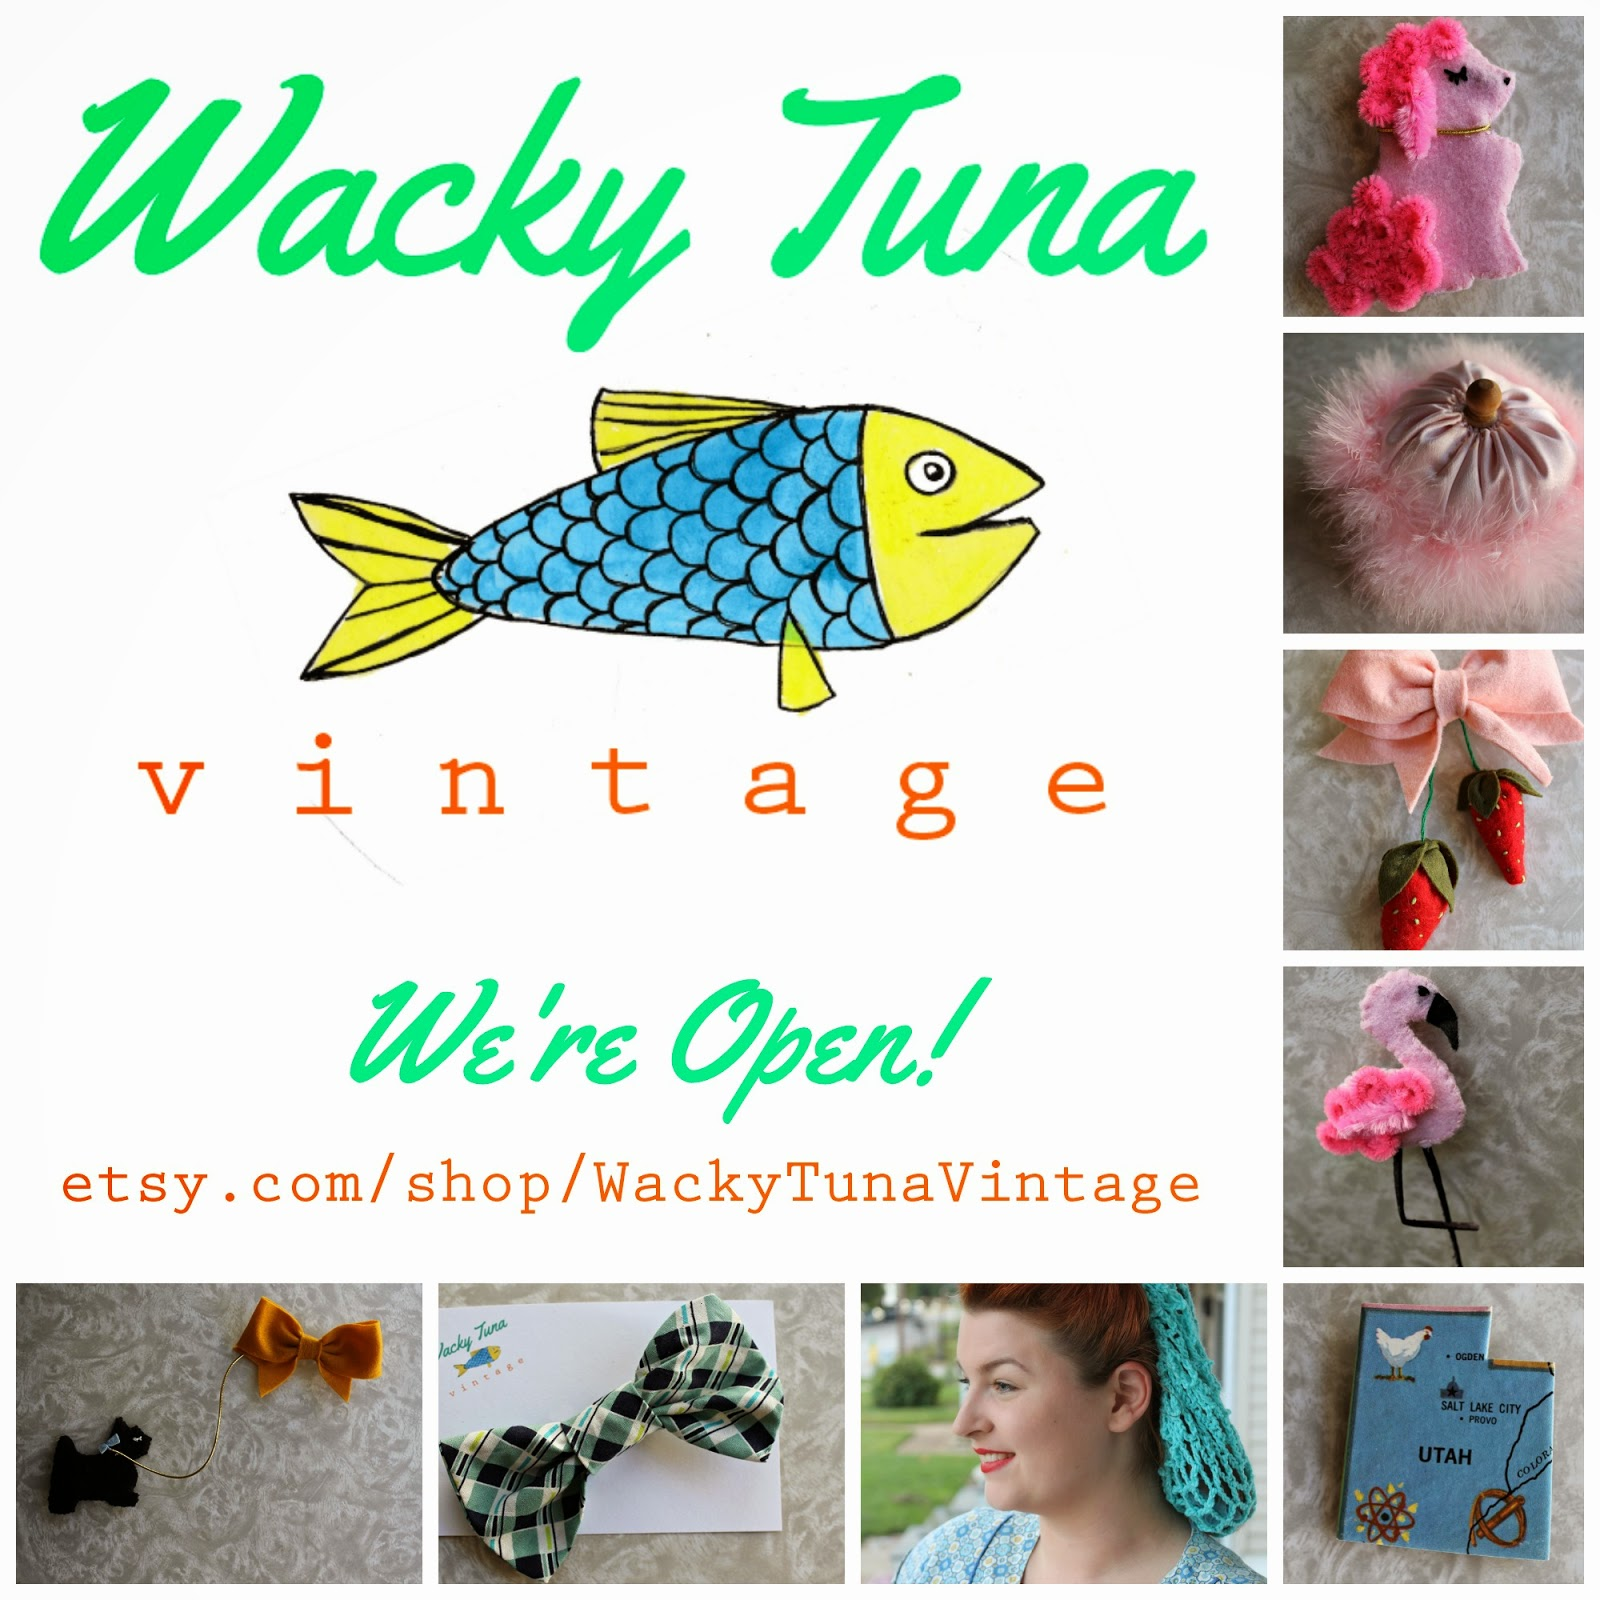 vintage felt brooches, snoods and scarves from wacky tuna vintage on etsy